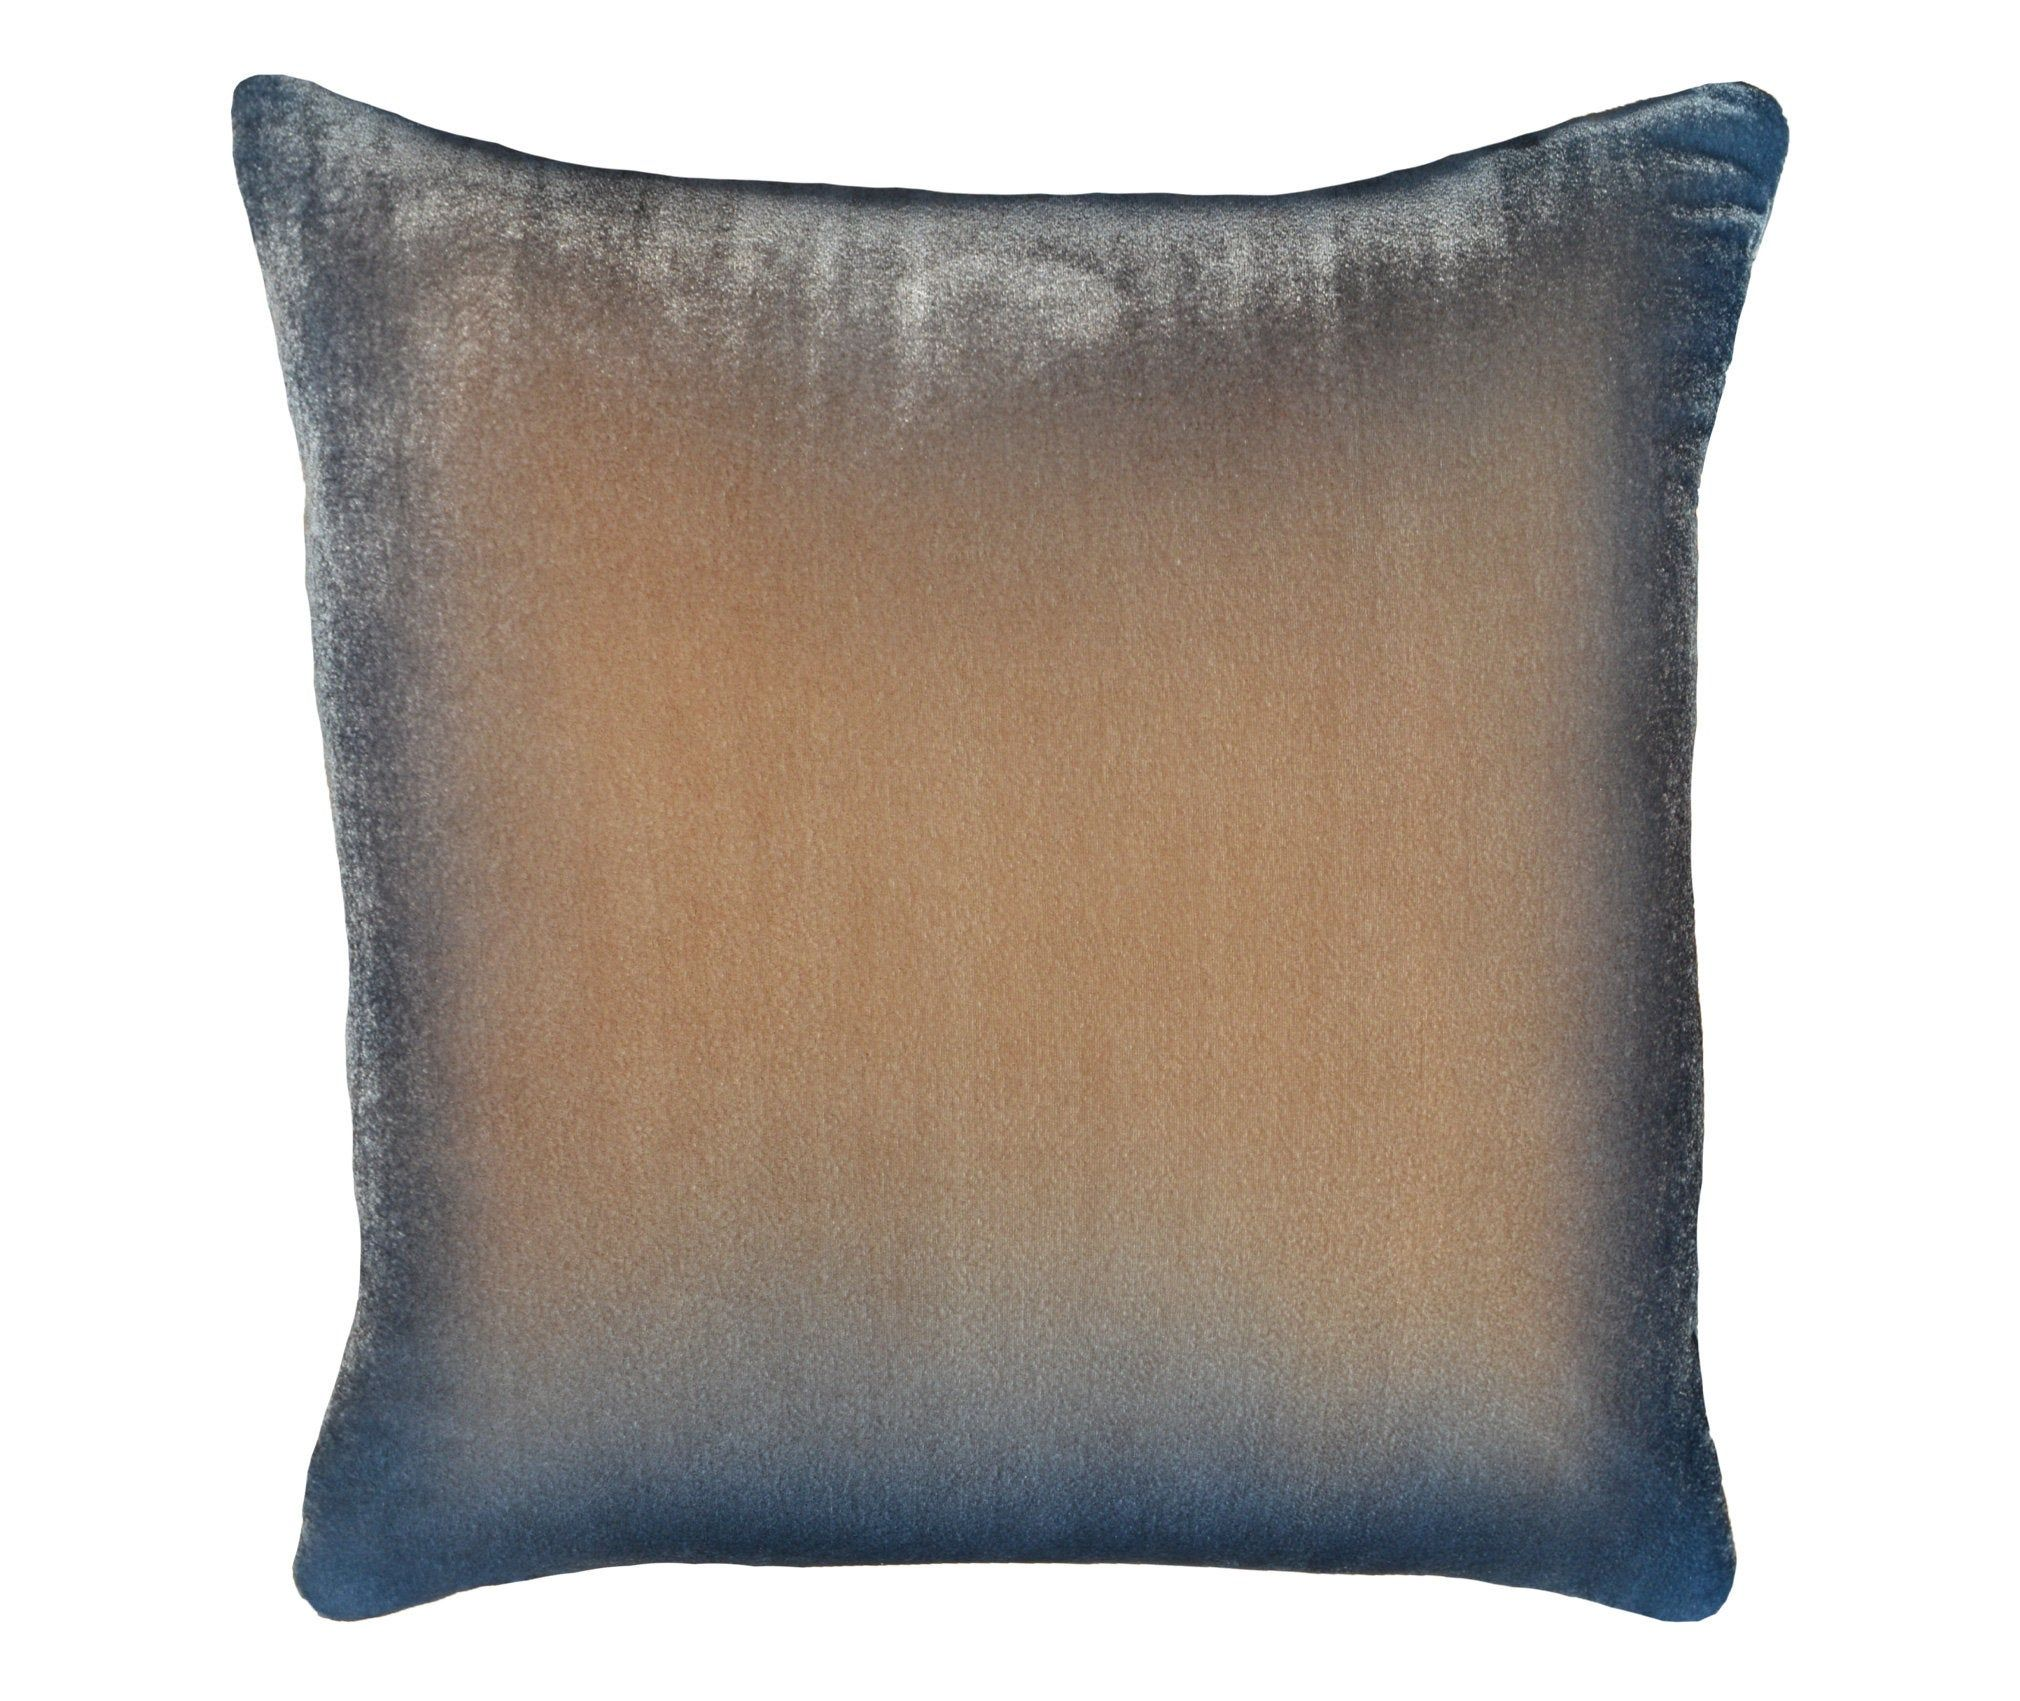 Ombre Velvet Pillow 19 X 19 Cover Hand Painted Silk Velvet Beige To Blue Ombre Velvet Throw Pillow For Sofa Luxury Handmade By Fabric17 Throw Pillows Velvet Throw Pillows Velvet Pillows